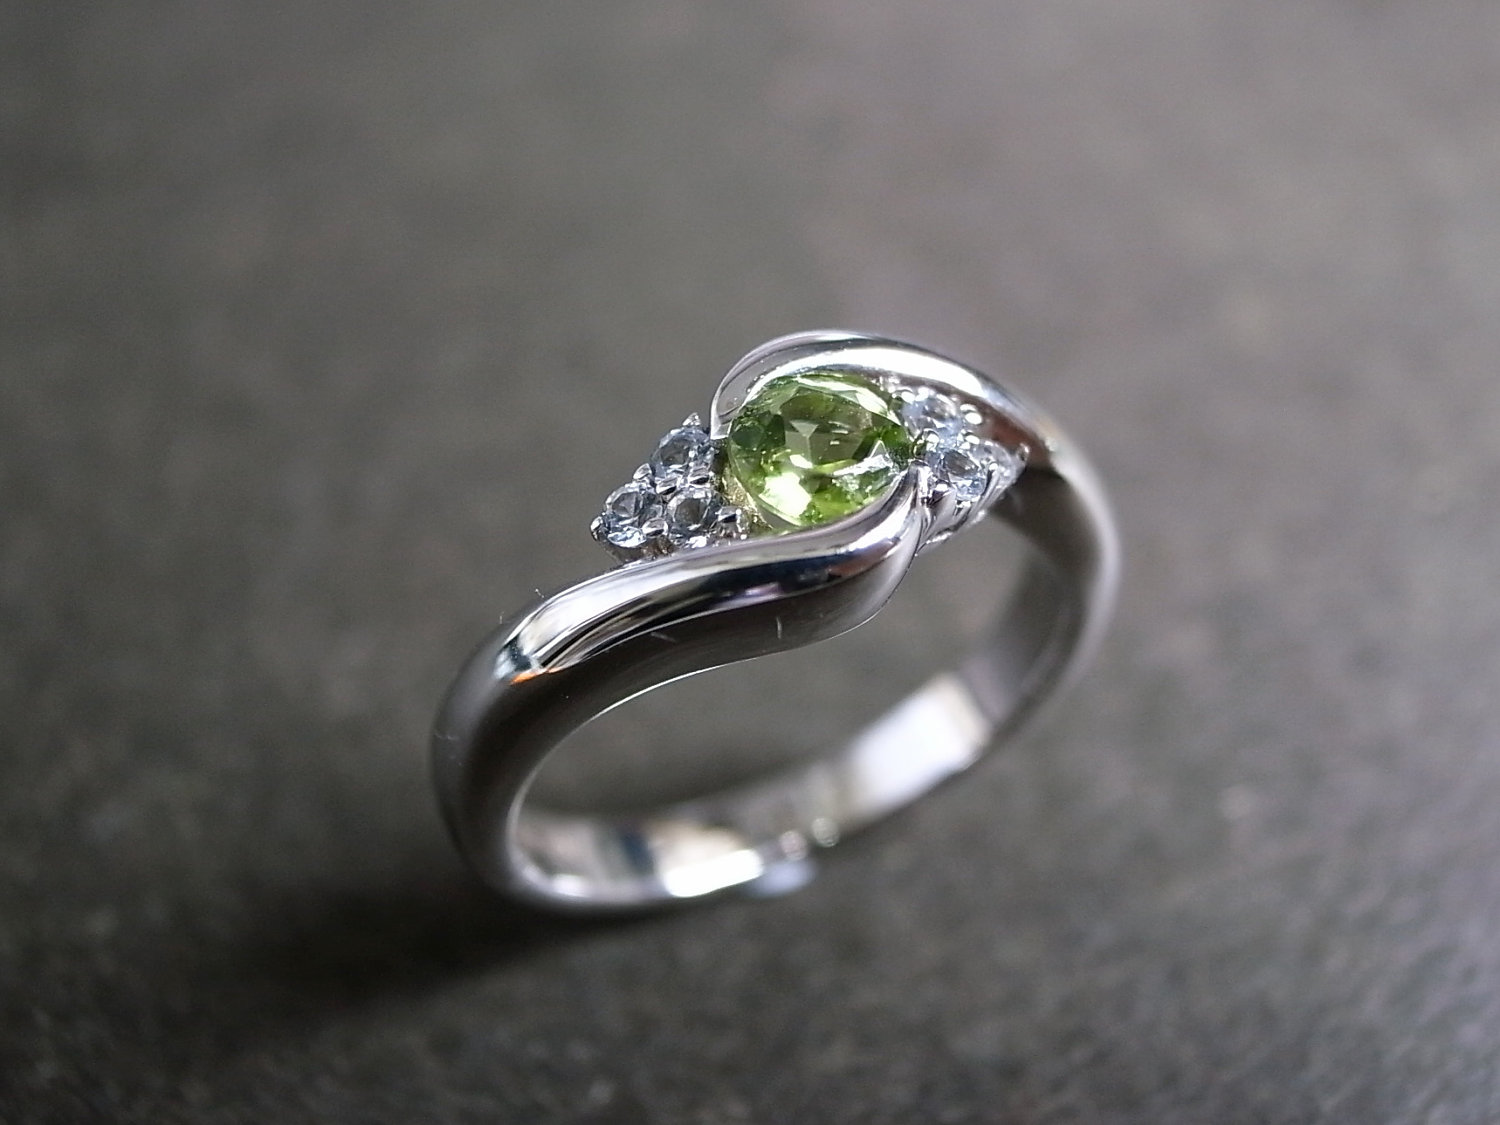 wedding ring with green sapphire in 14k white gold - Sapphire Wedding Ring